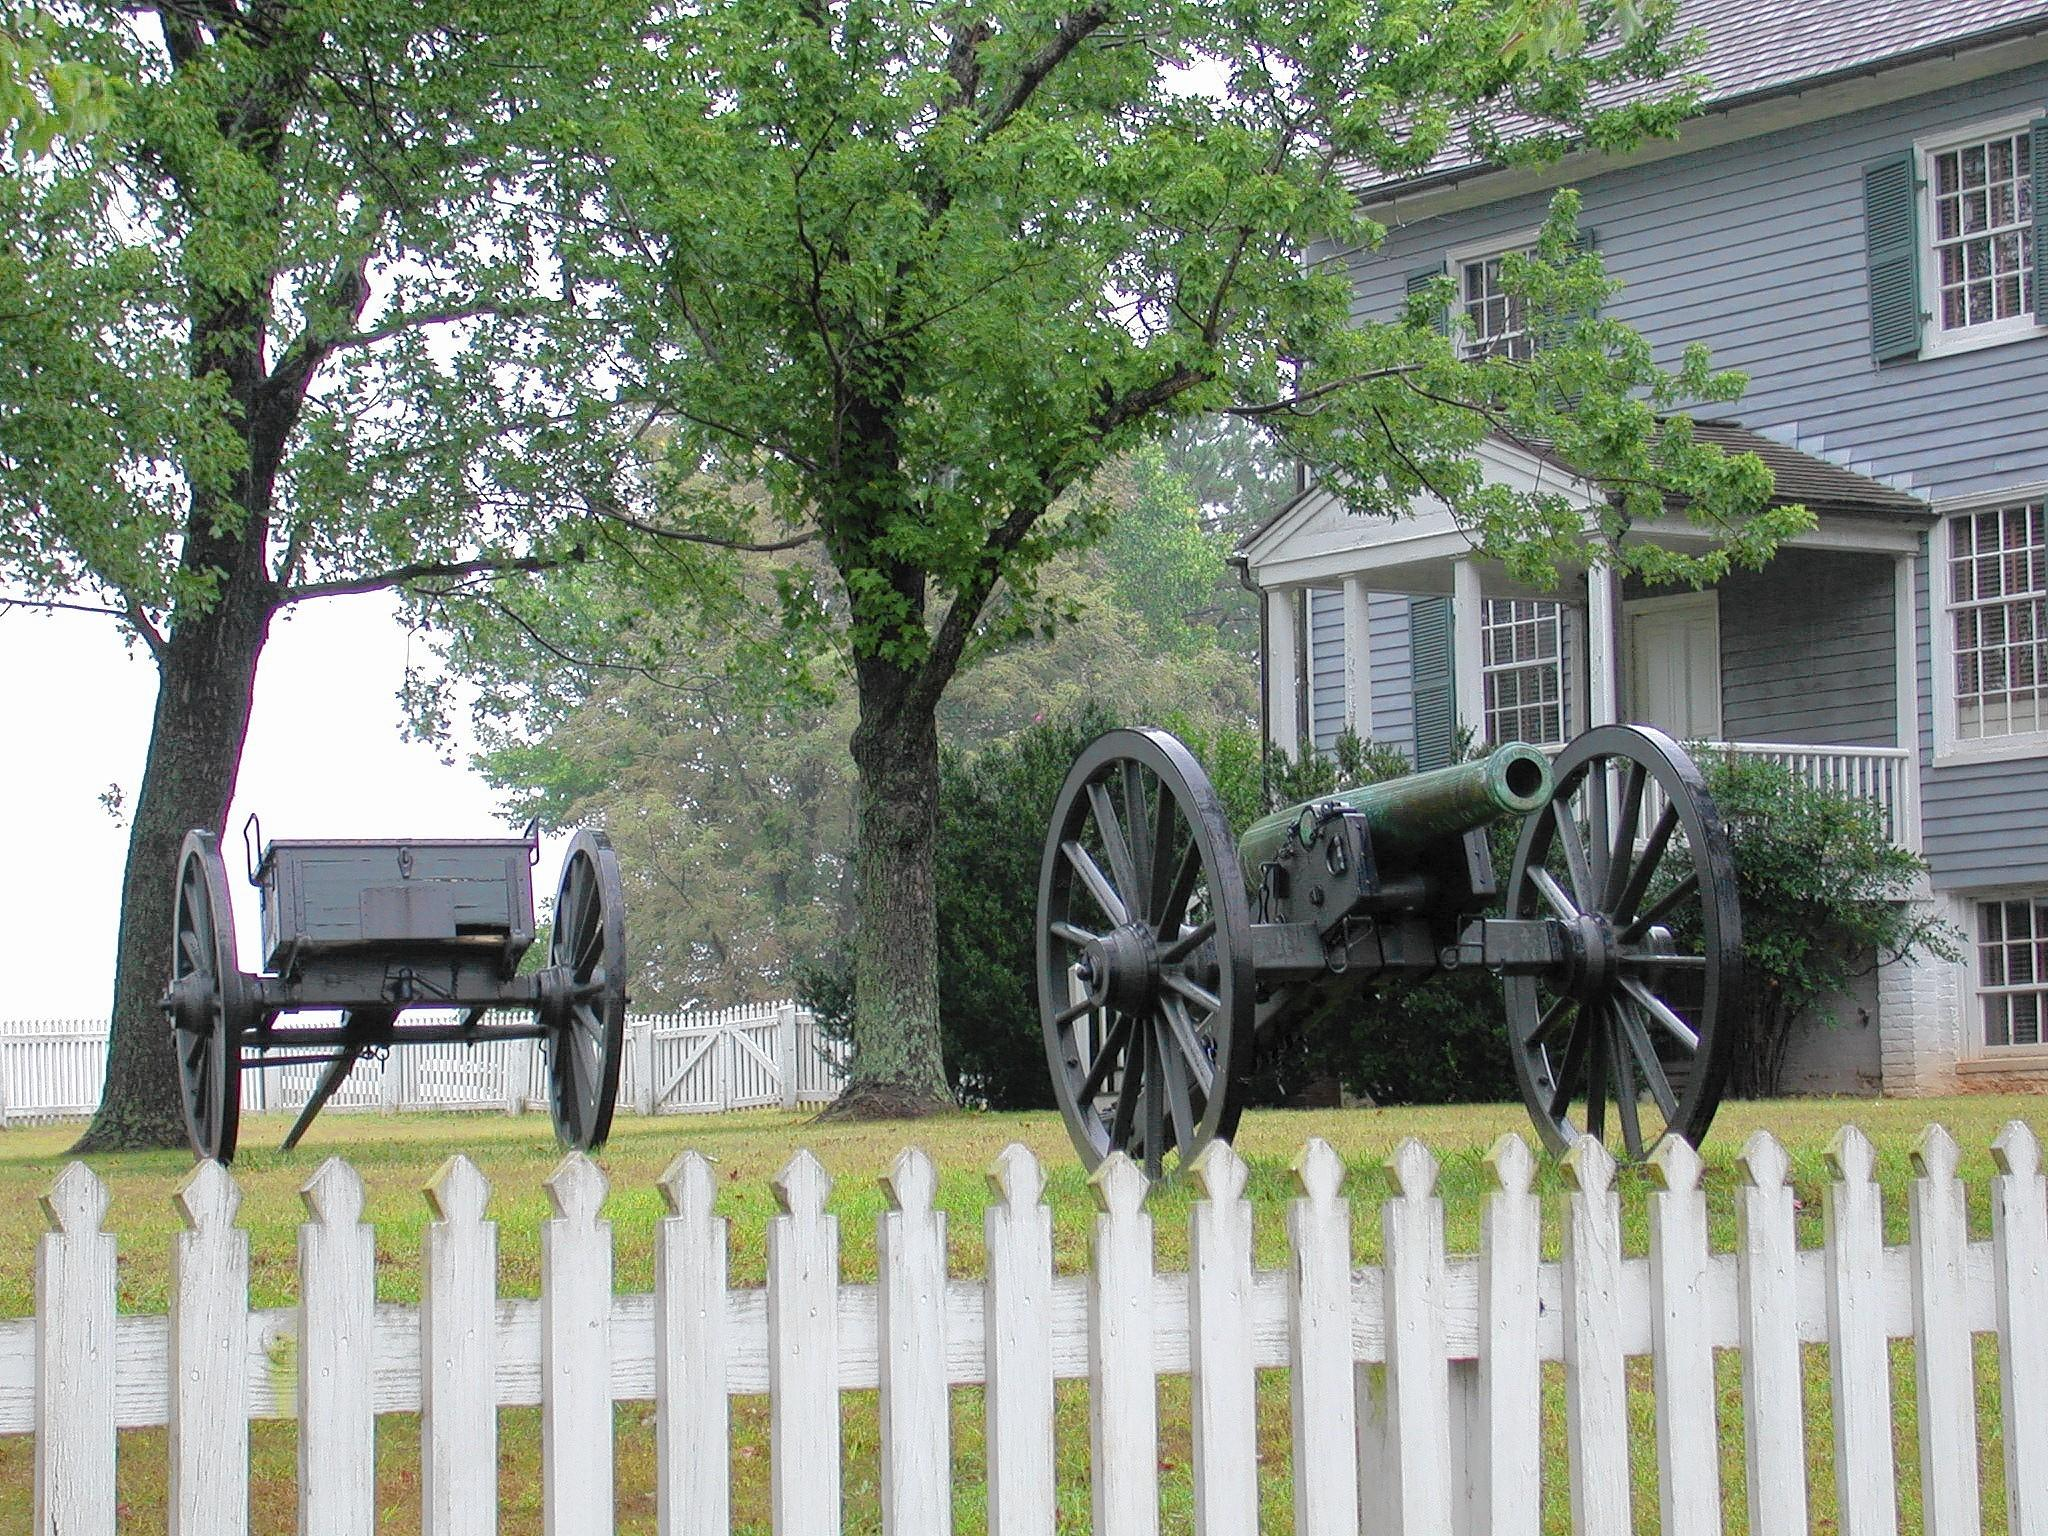 The last shots of the Civil War were fired in front of the home of George and Jenny Peers at Appomattox Court House. The cannon in their front yard was used in the final battles of the war.